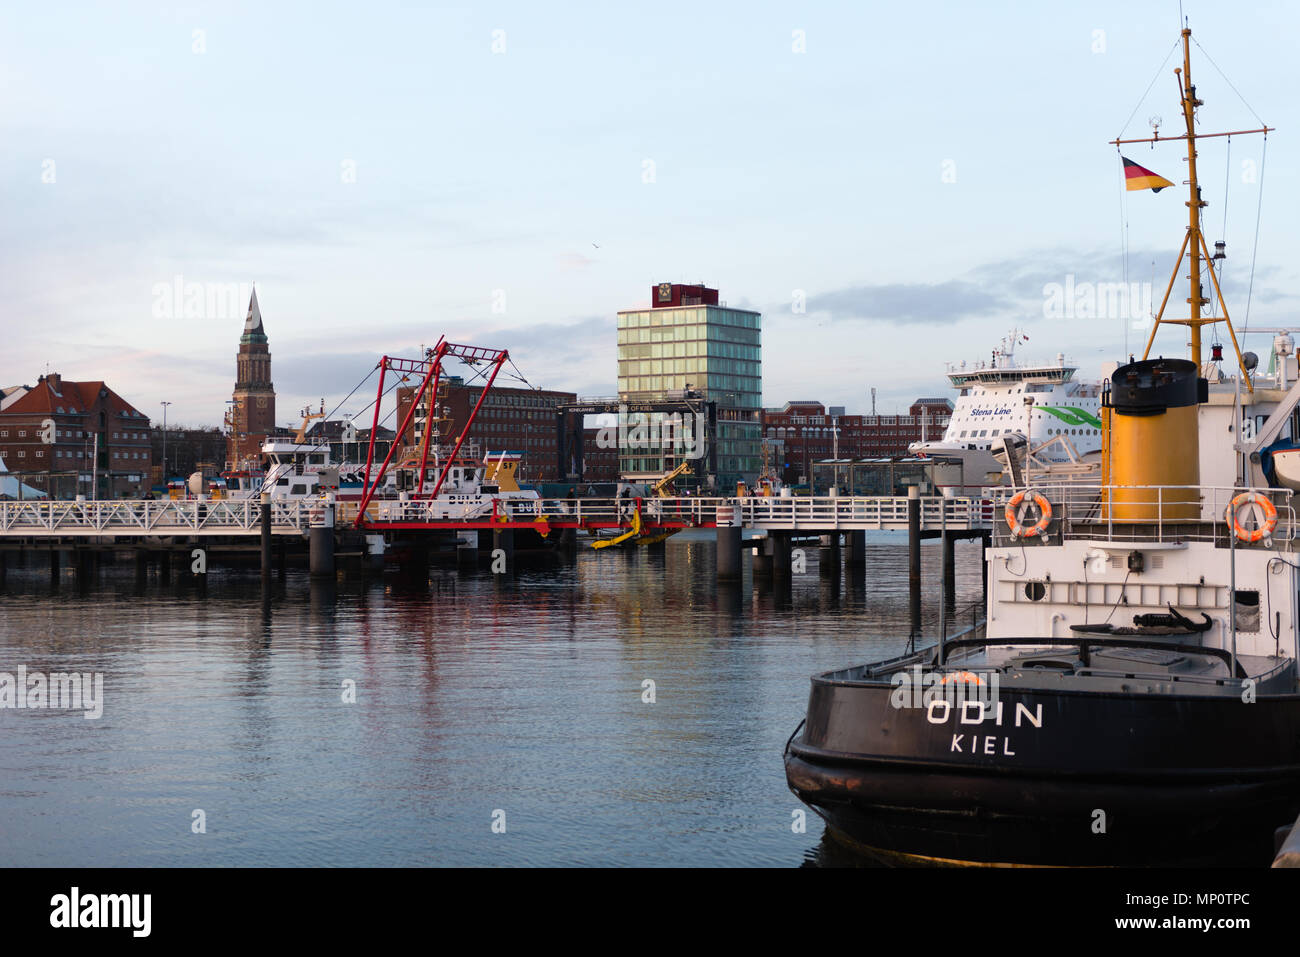 City view of Kiel with the end of the Kiel Fjord, the Hörn, and the flap bridge crossing the Hörn, Kiel, Schleswig-Holstein, Germany - Stock Image